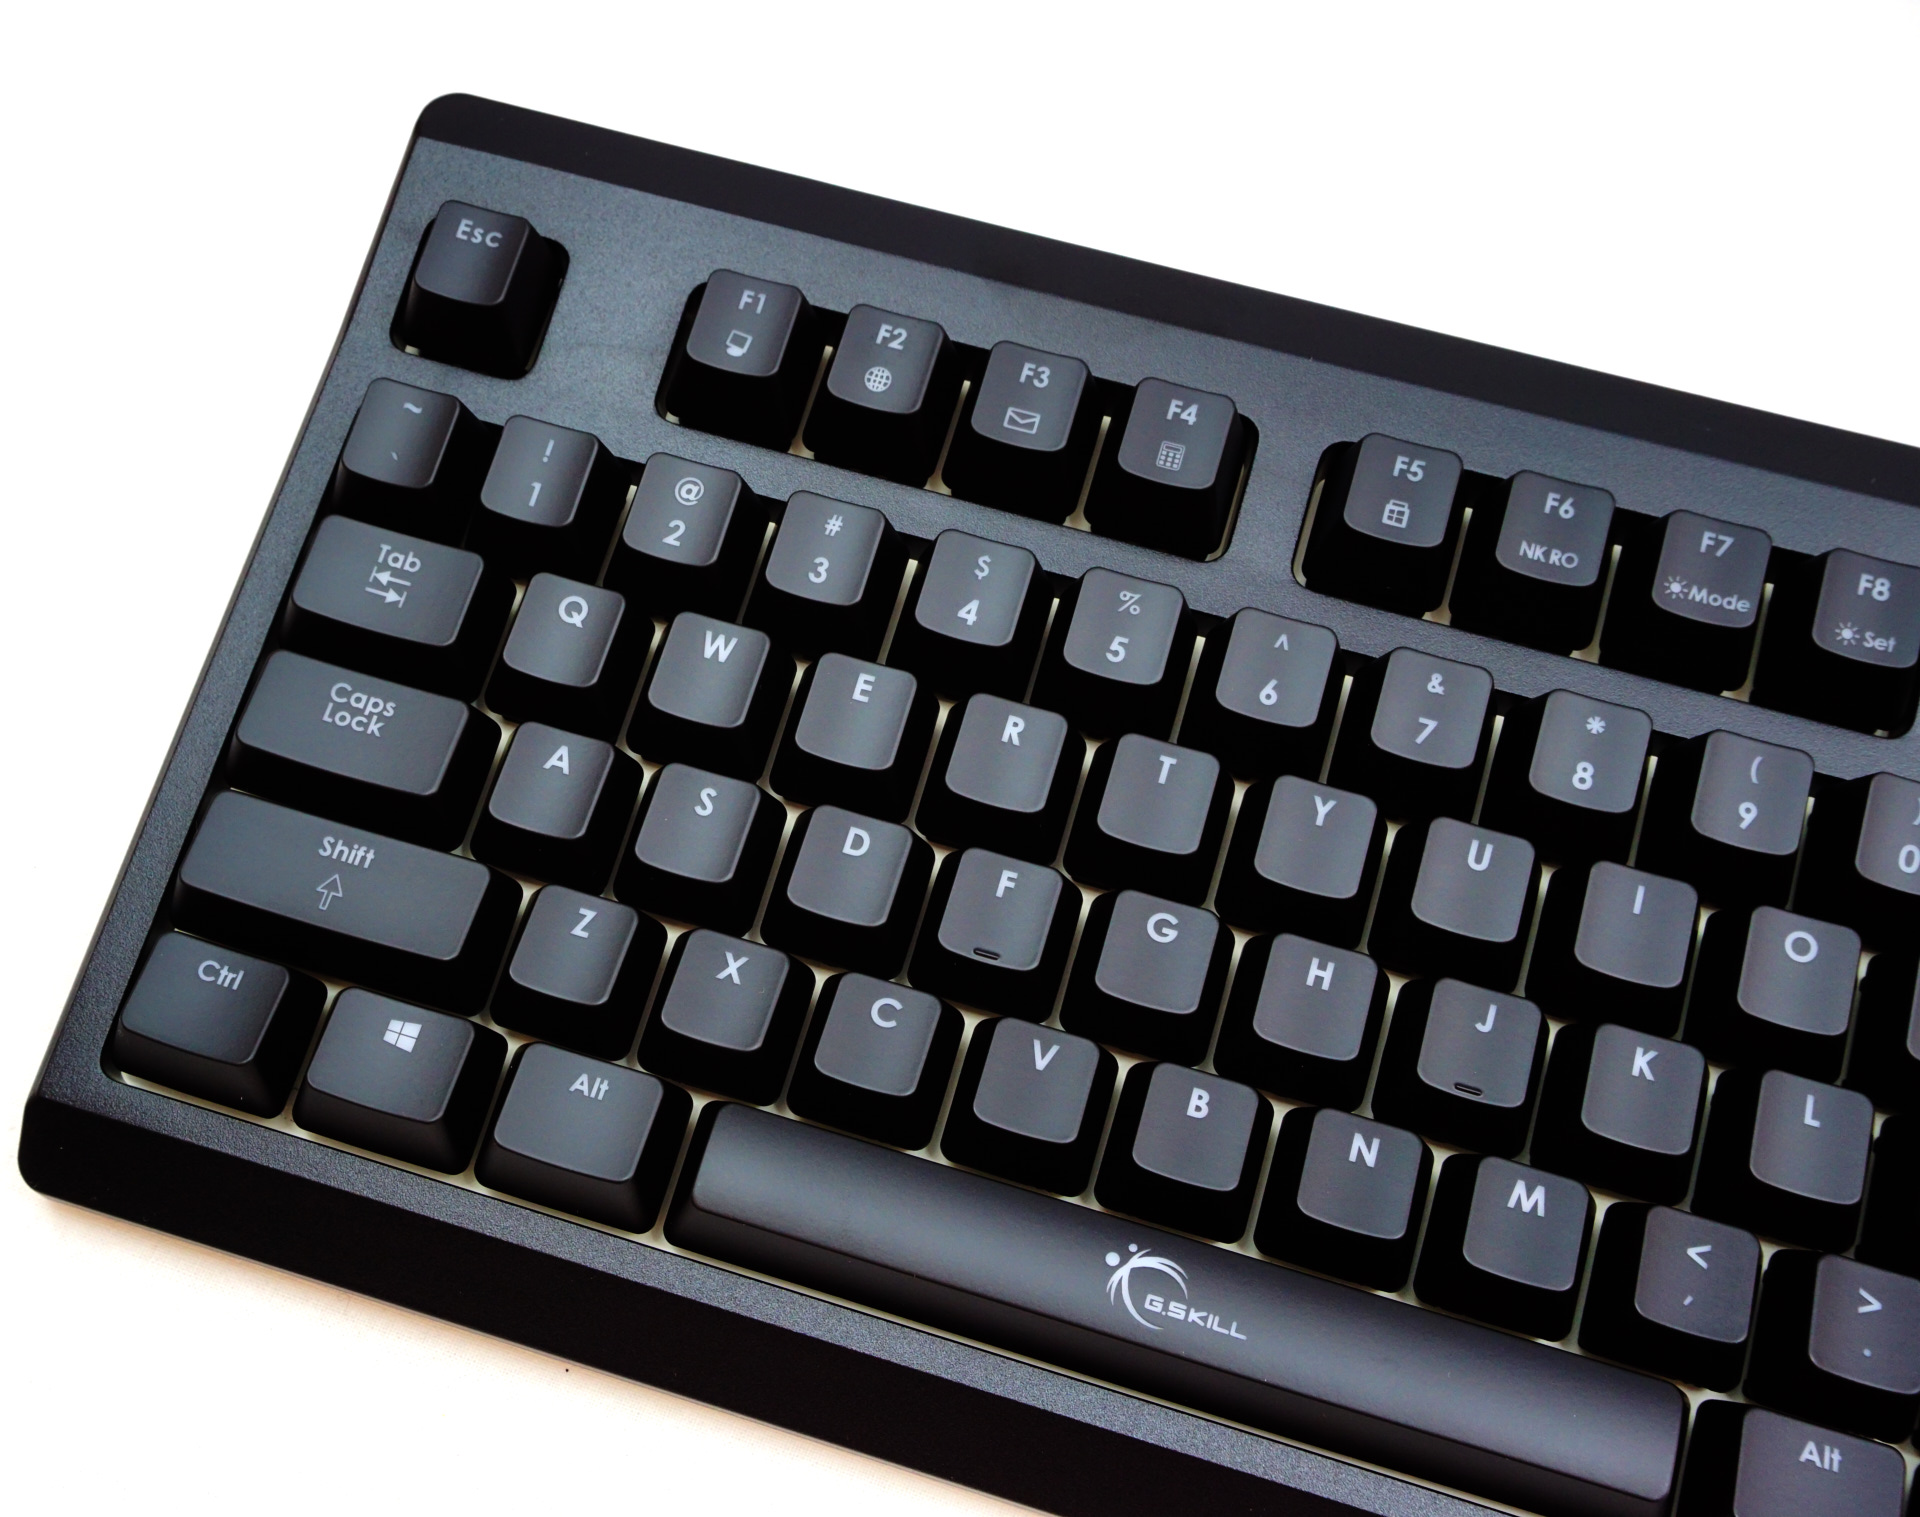 The Keyboard The G Skill Km570 Mx Mechanical Keyboard Review Sturdy Efficient